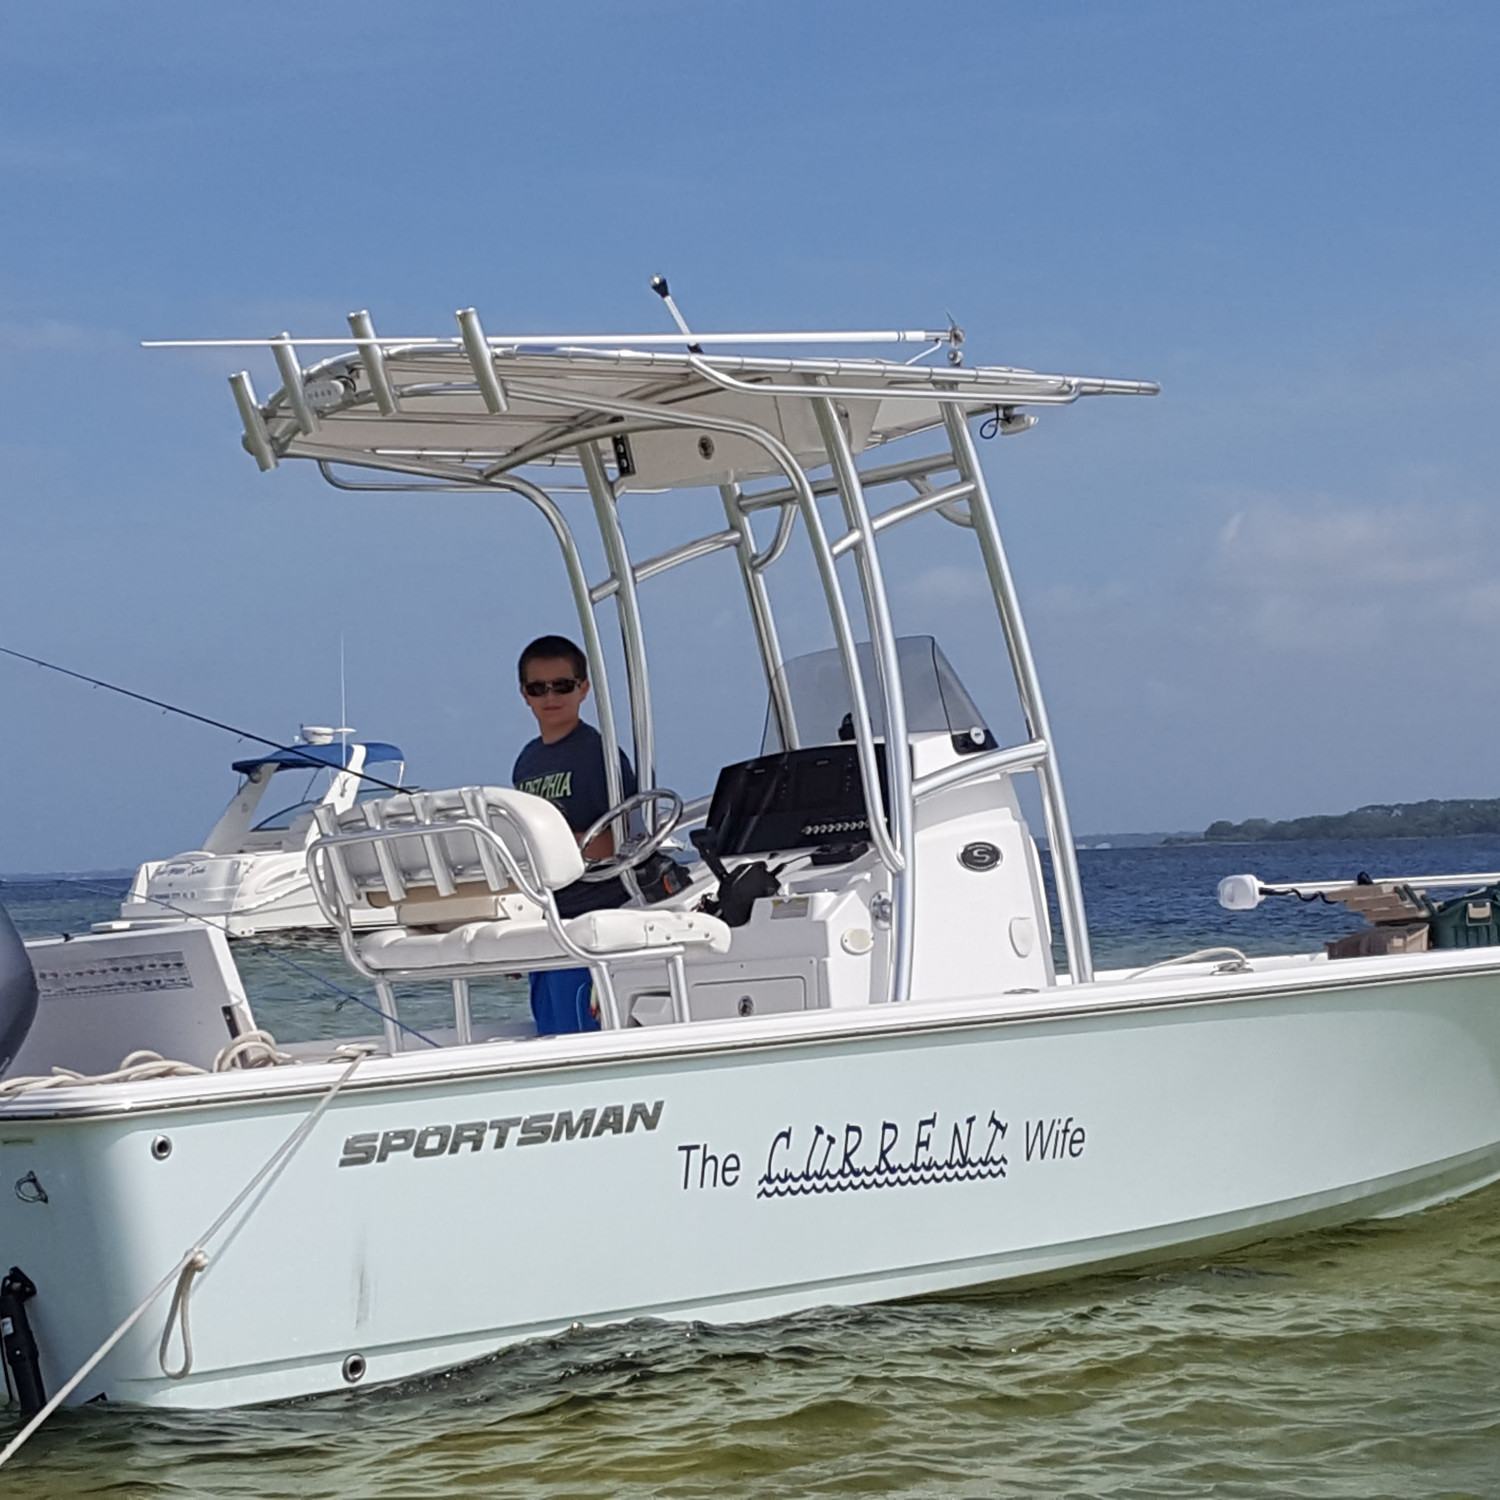 Title: A day at the island - On board their Sportsman Masters 227 Bay Boat - Location: Panama City,fl. Participating in the Photo Contest #SportsmanNovember2017